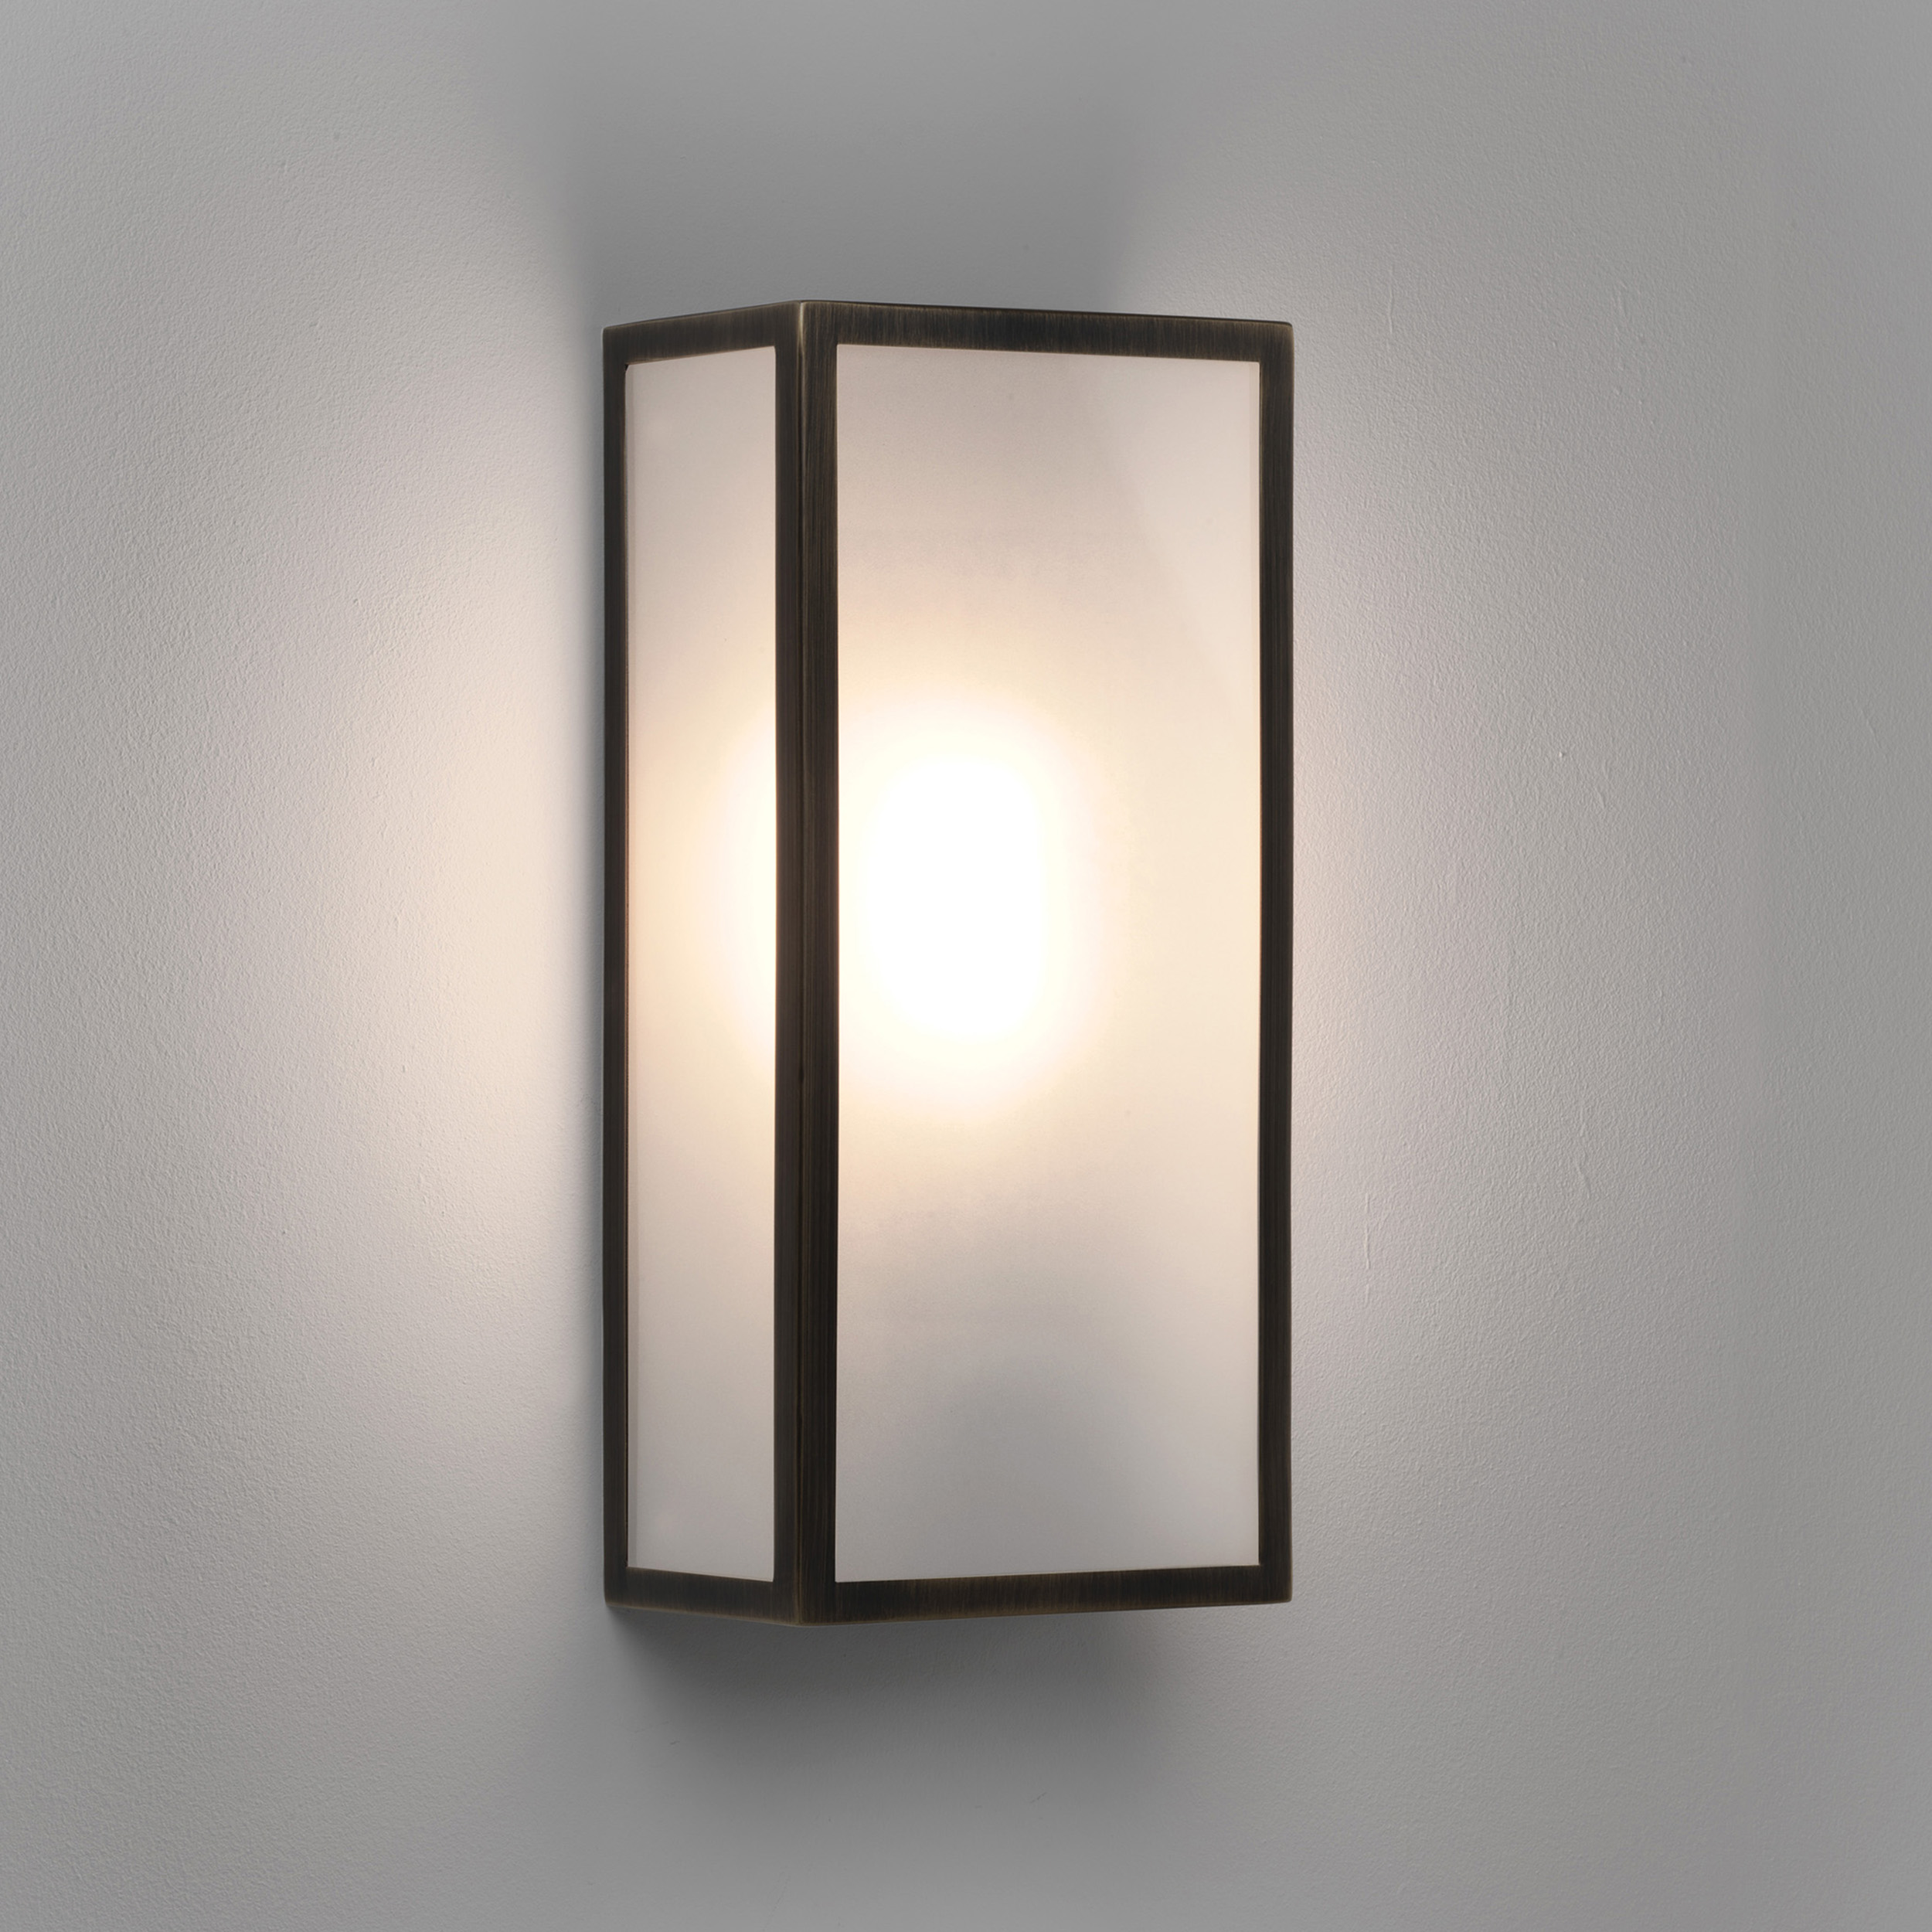 Astro Messina exterior external wall light 60W E27 bronze frosted glass Liminaires